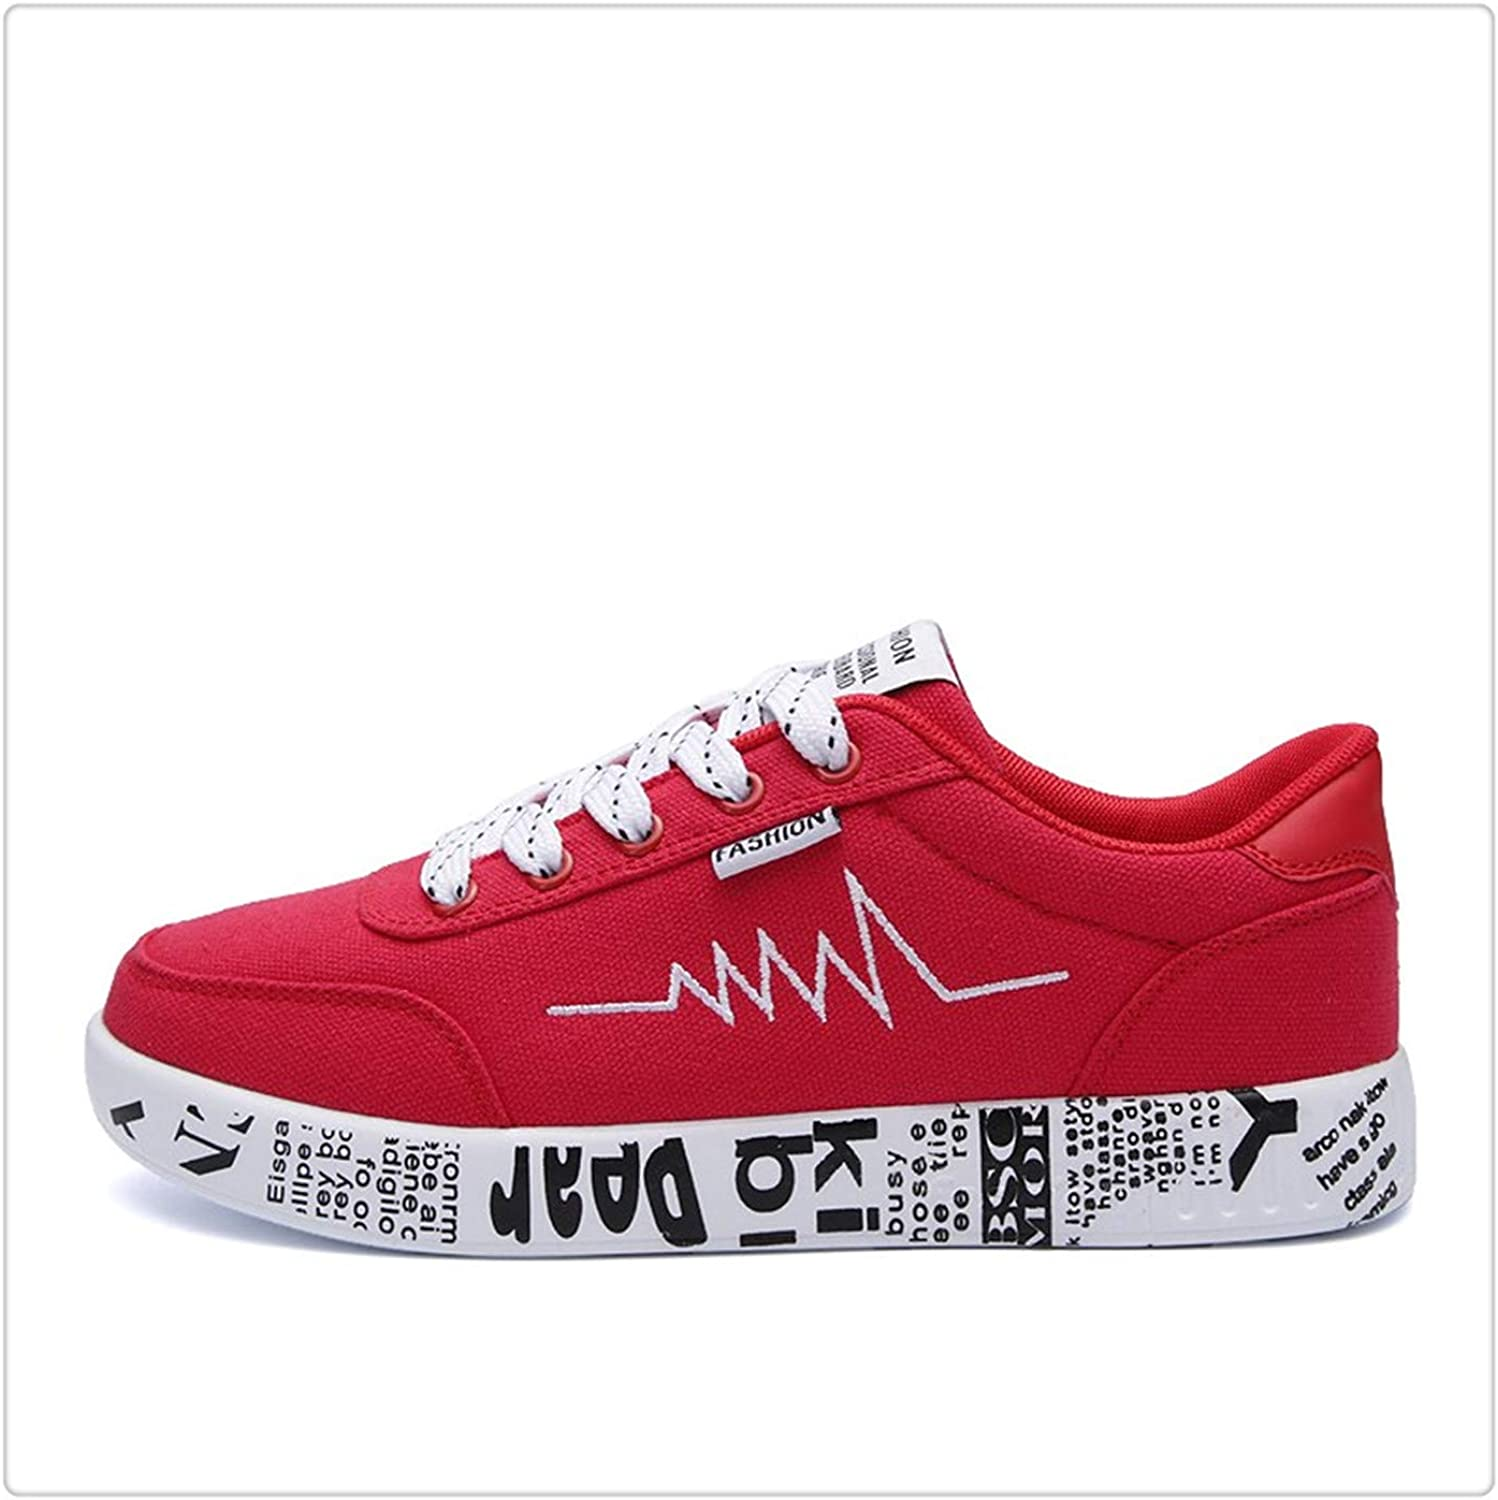 KKEPO& Fashion Women Casual Sneaker shoes Ladies Lace-up Vulcanized Couple shoes Breathable Canvas shoes Graffiti Flat Chaussure Femme RED 2616 8